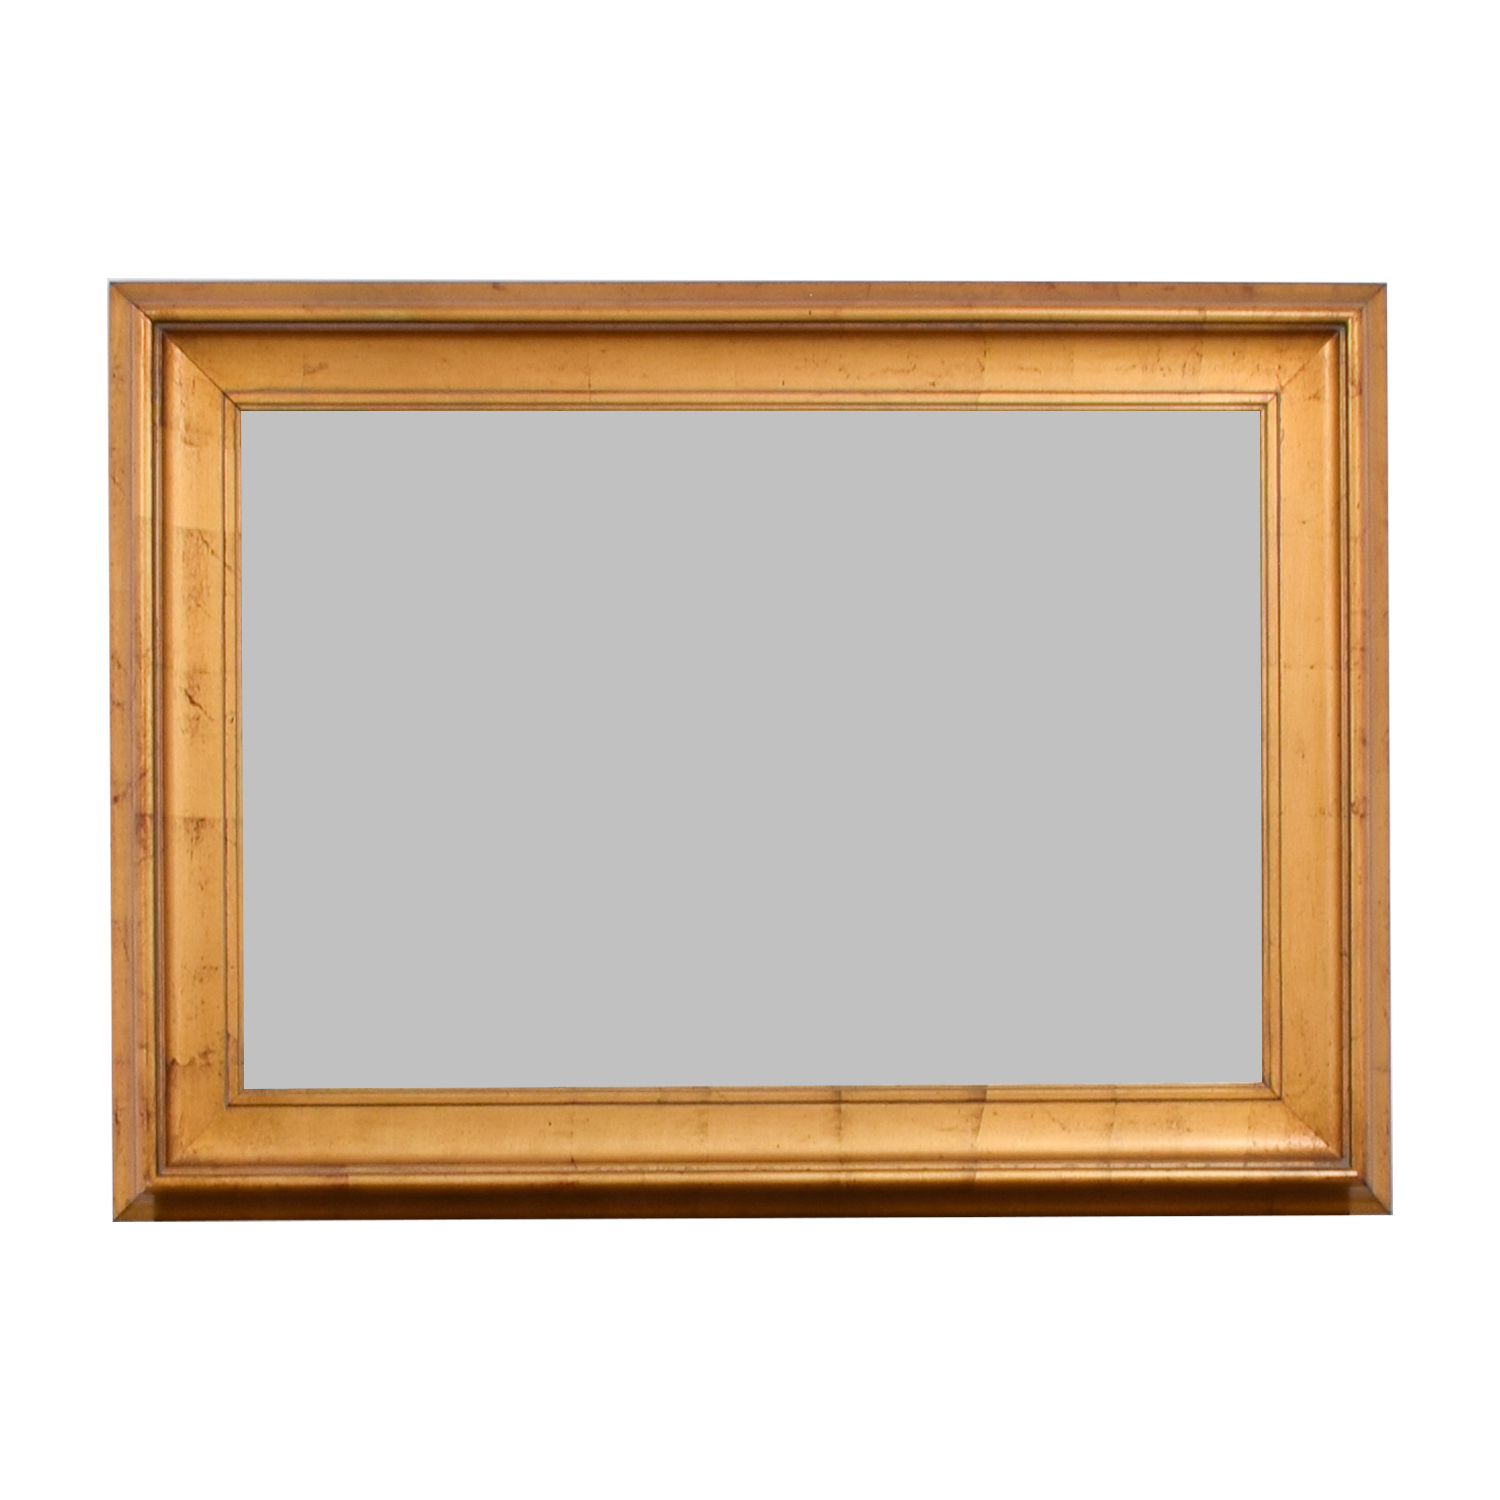 Wood Framed Wall Mirror used